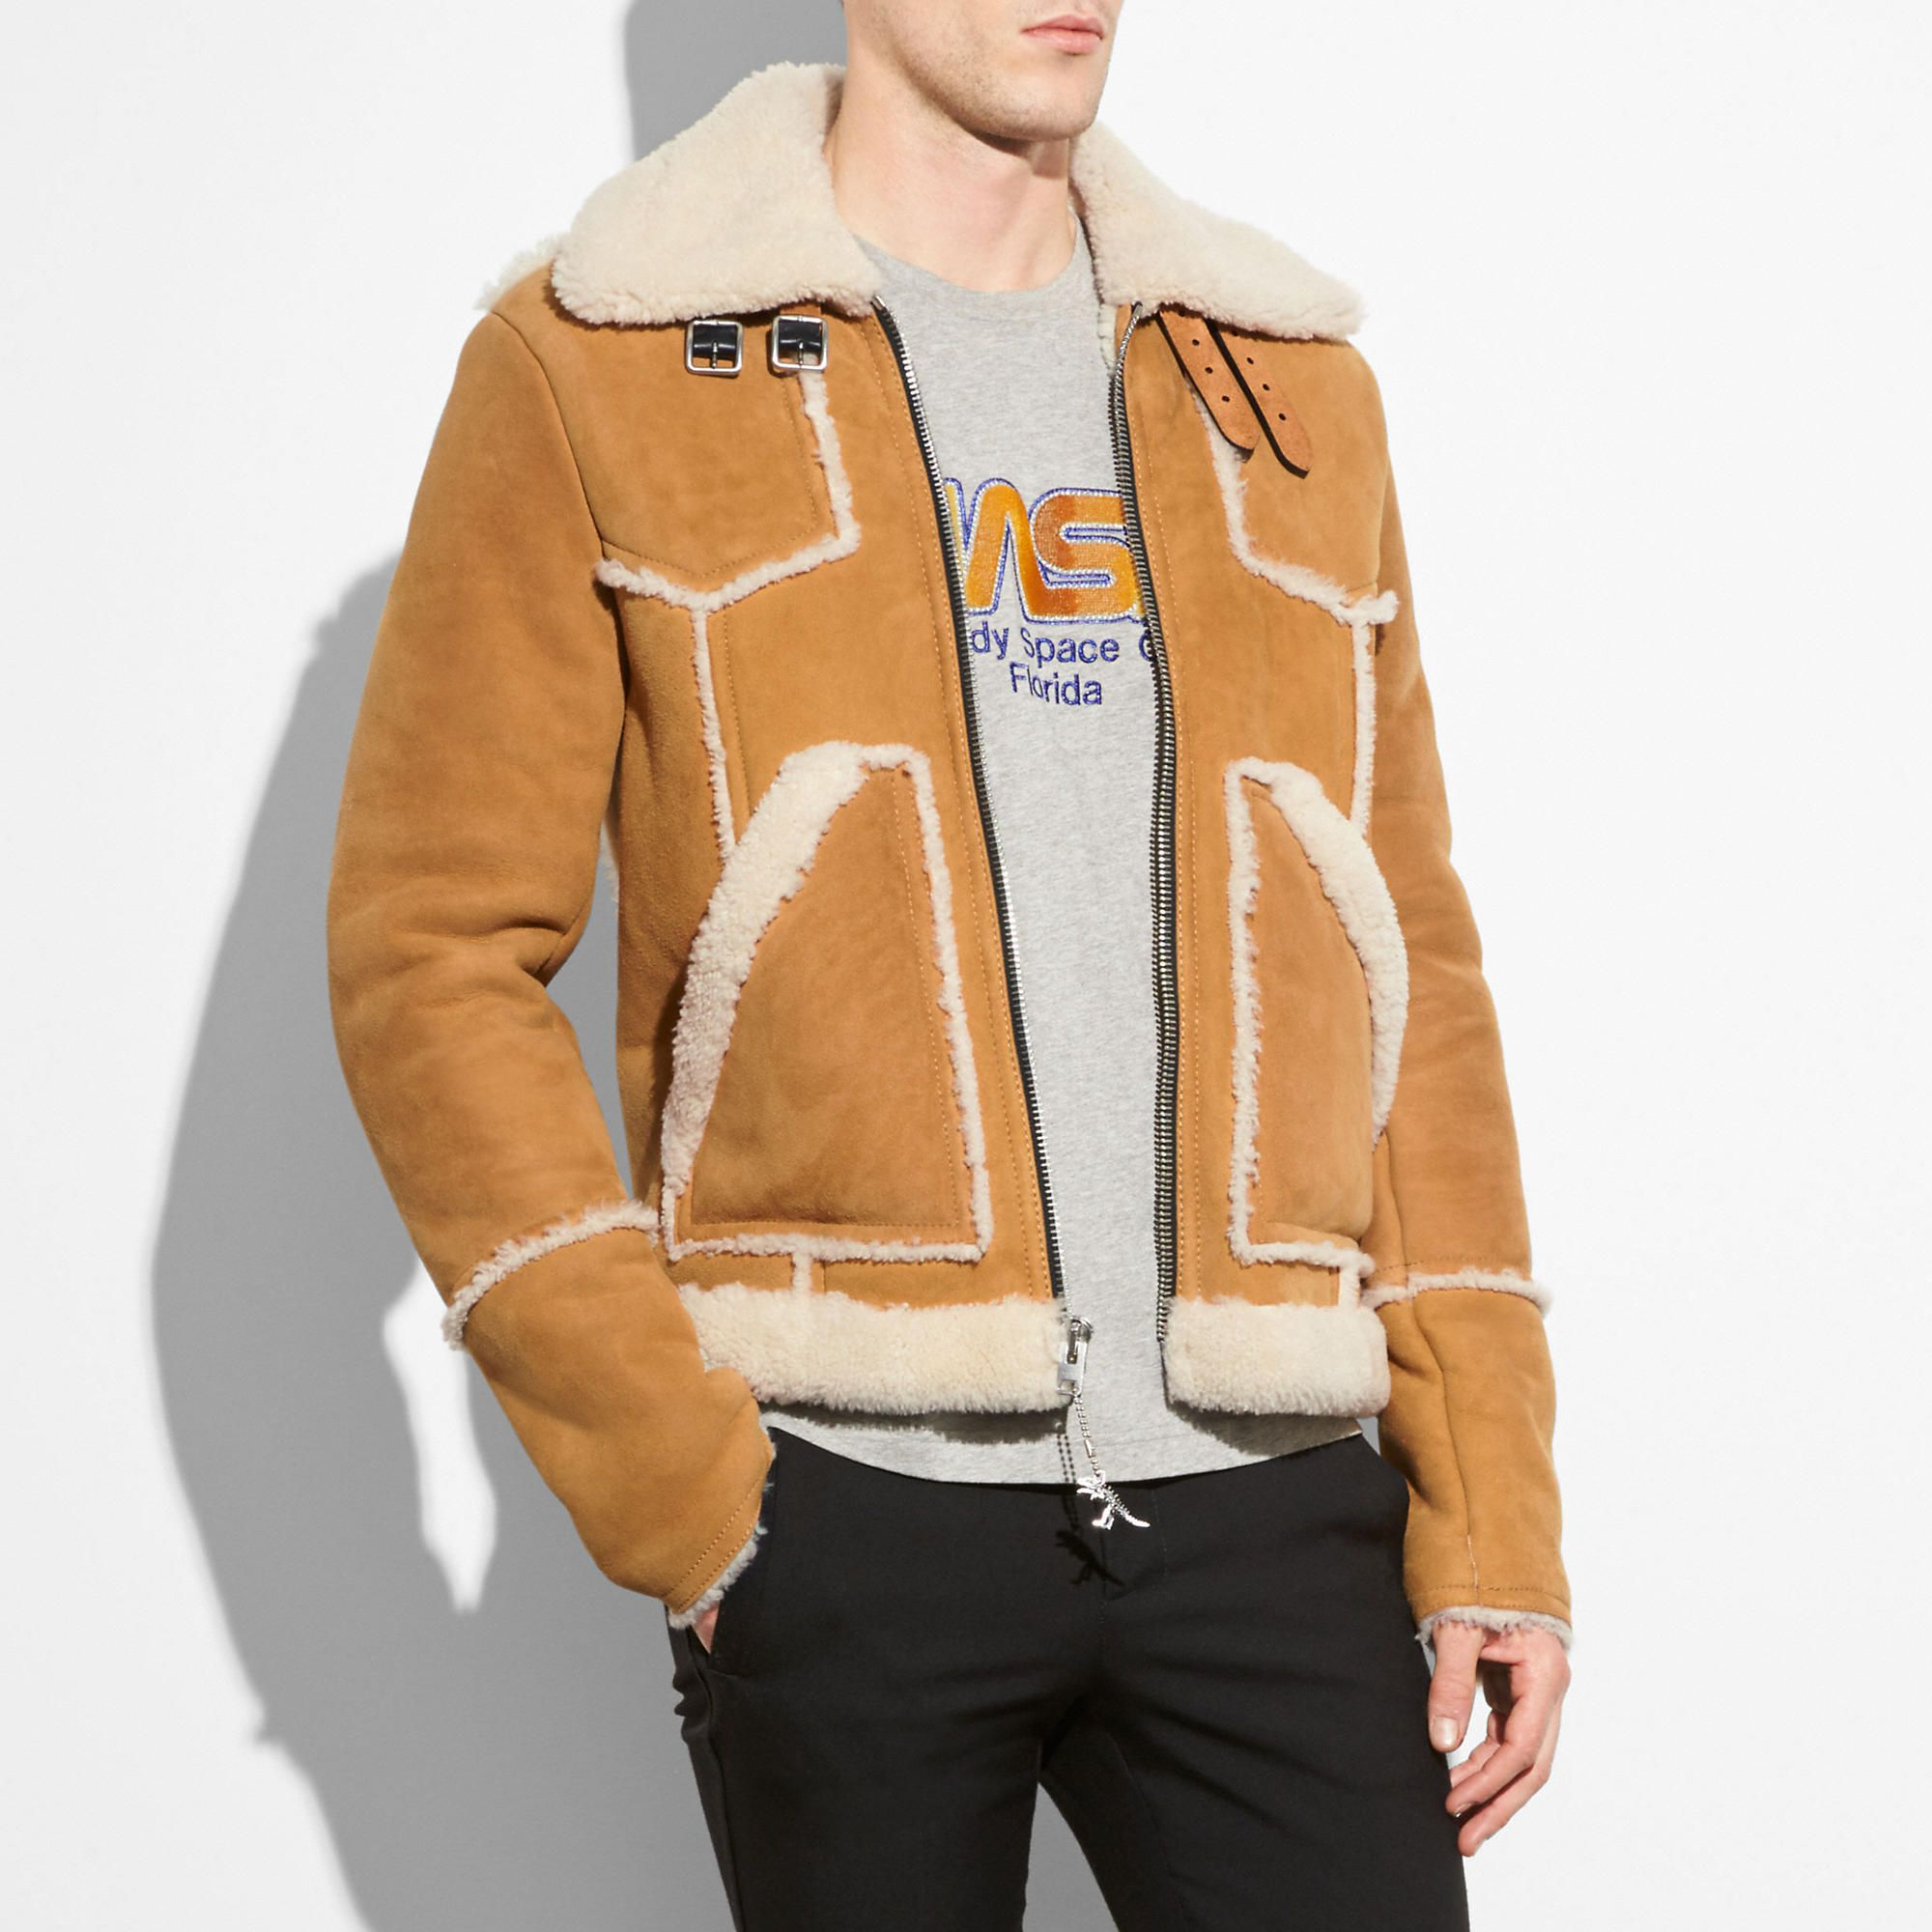 Pin By Modesens On Style Shearling Jacket Designer Clothes For Men Jackets [ 2000 x 2000 Pixel ]